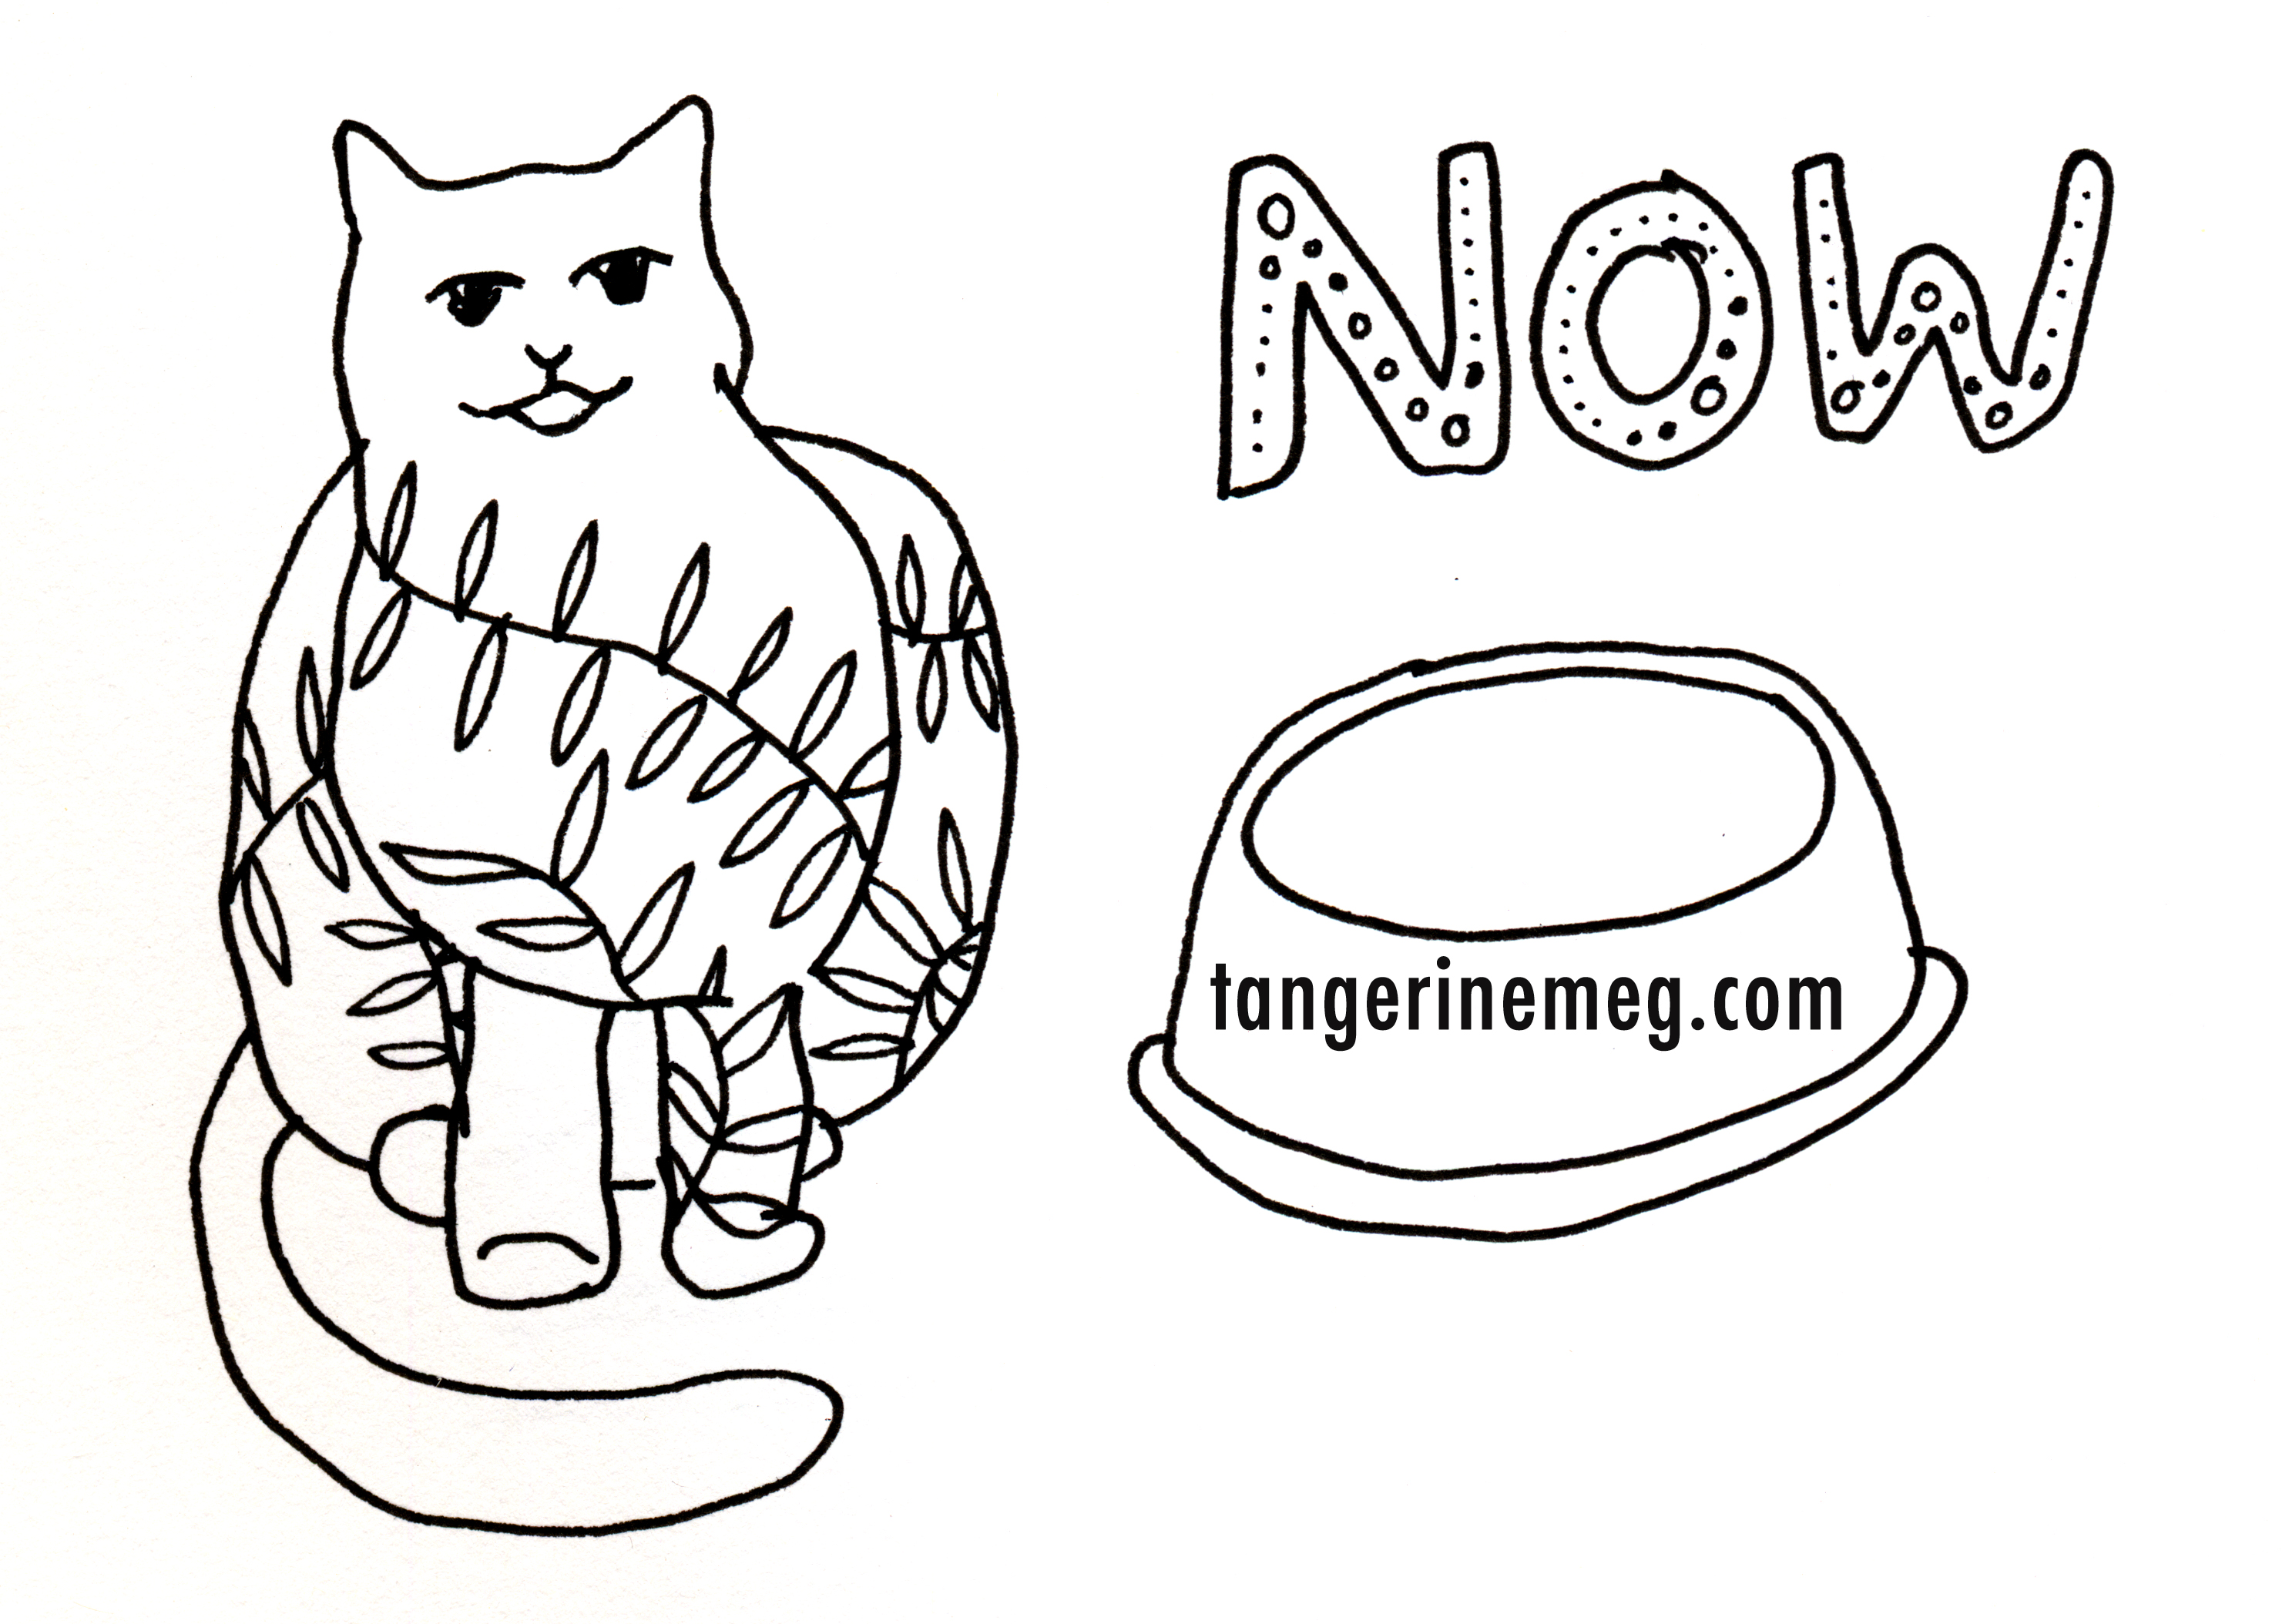 pen drawing on white background of a vine-decorated cat sitting beside and empty cat food bowl